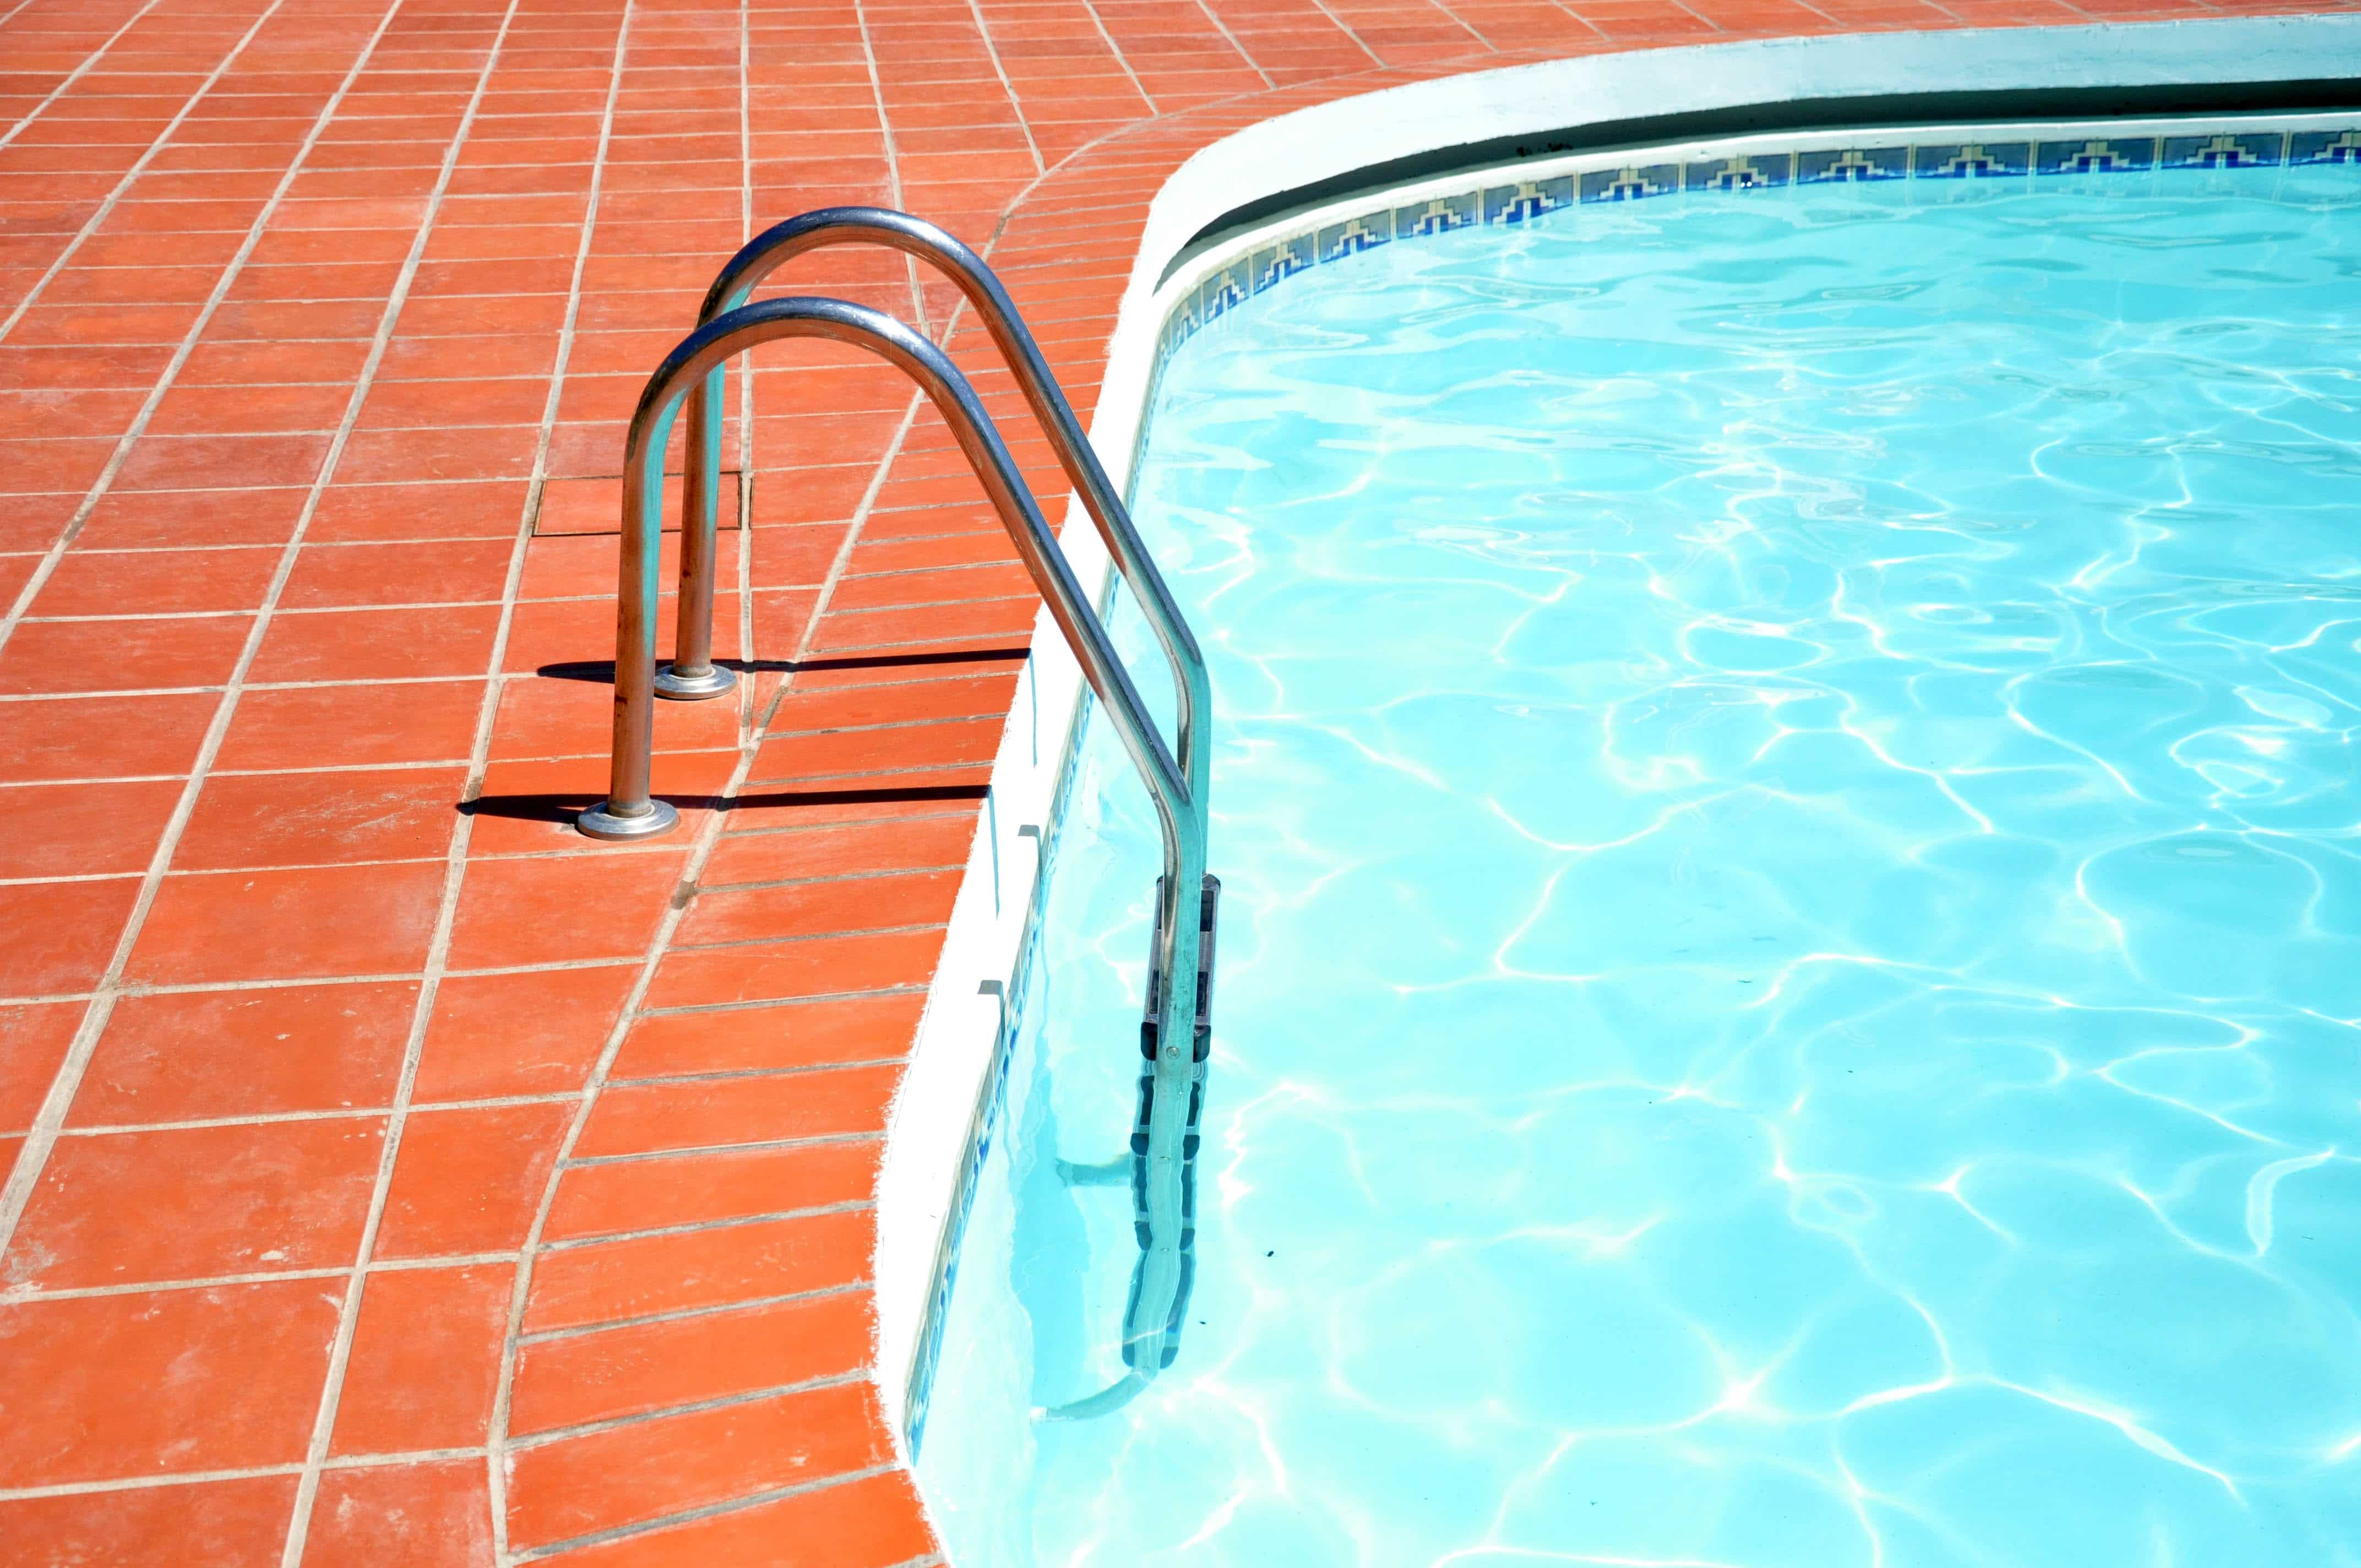 Homemade solar pool heaters clean energy ideas - Solar hot water heater for swimming pool ...